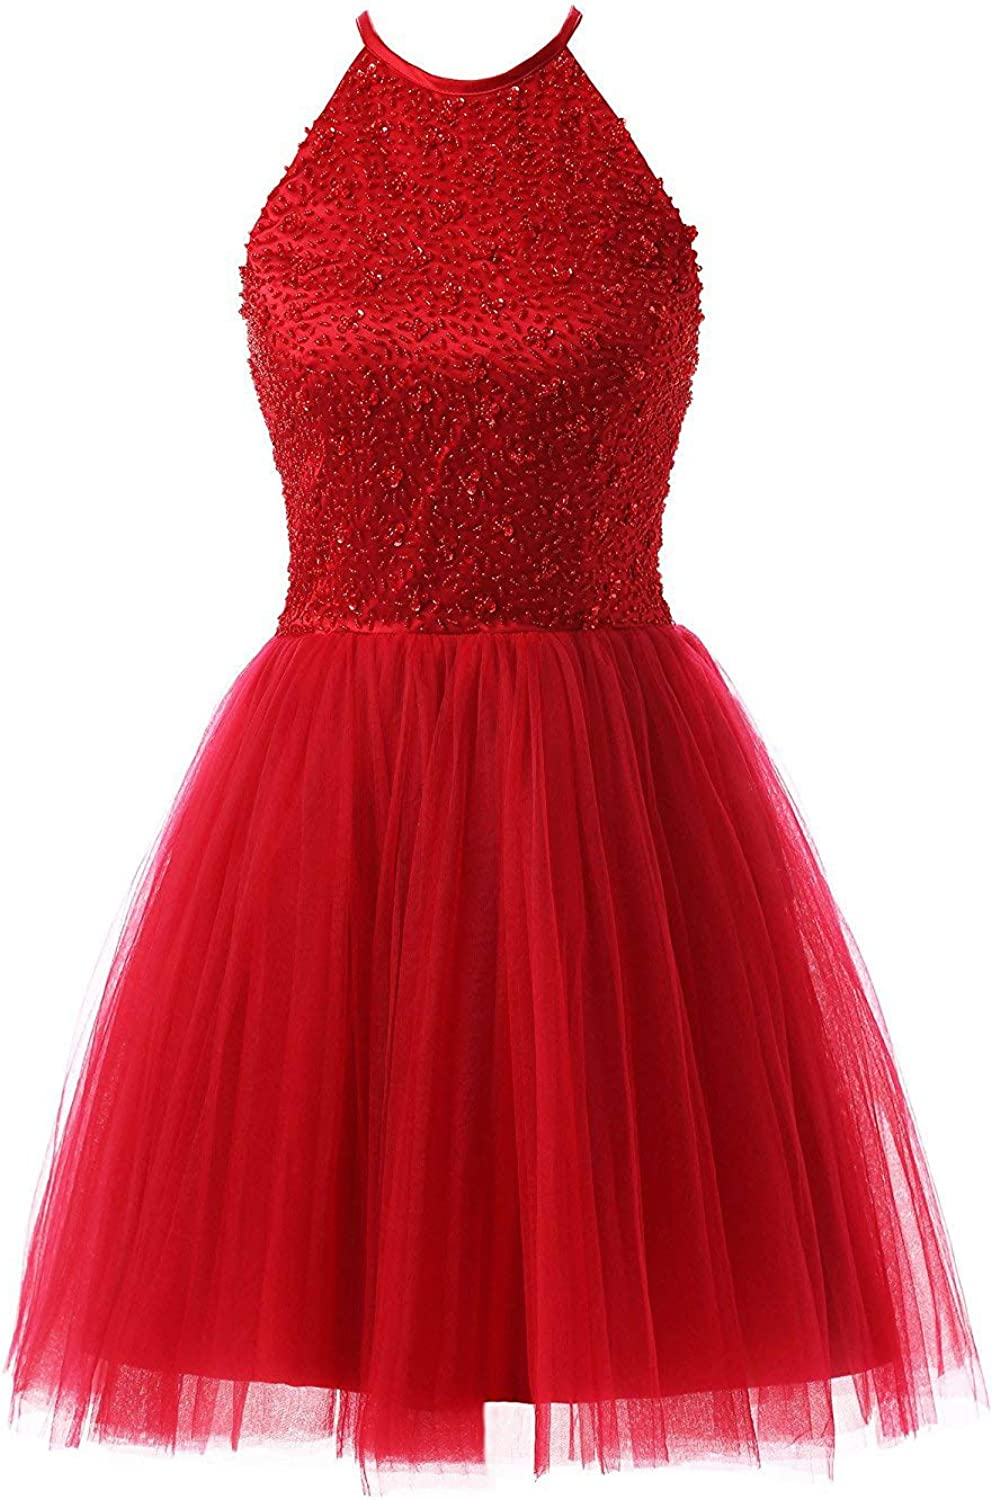 Beilite Women's Beads Short Homecoming Dresses Cocktail Party Gown